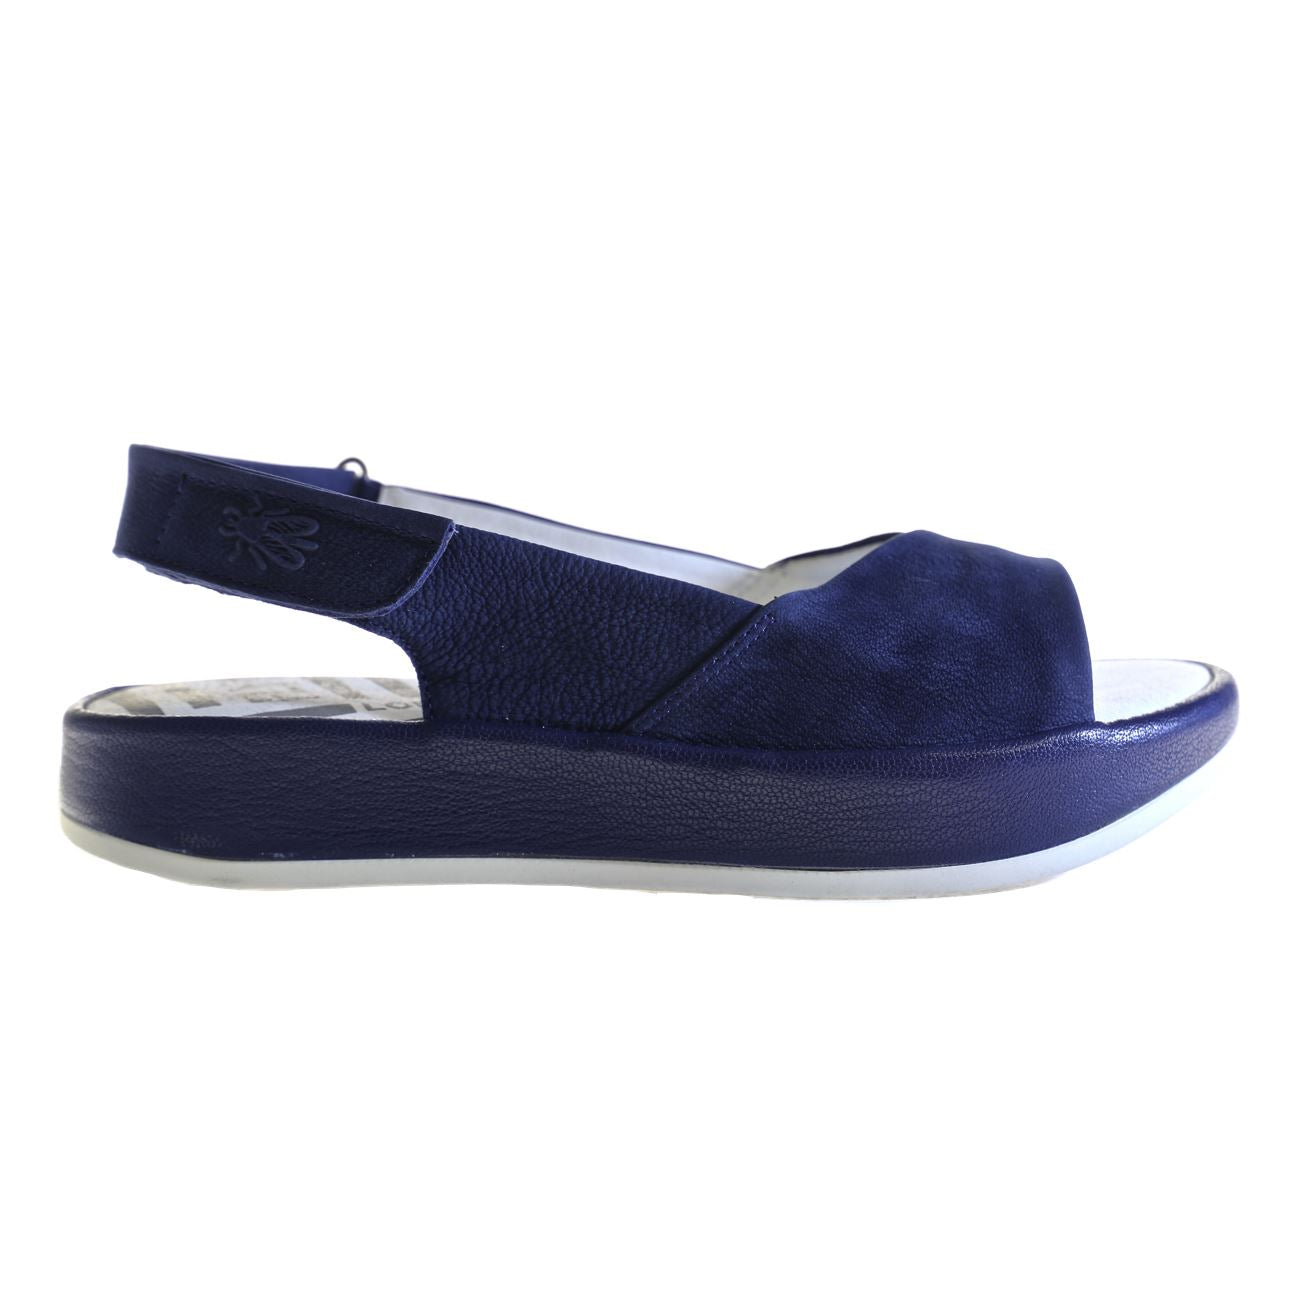 Fly London, FLS18-Bari, Sandal, Leather, Blue Sandals Fly London Blue 006 37